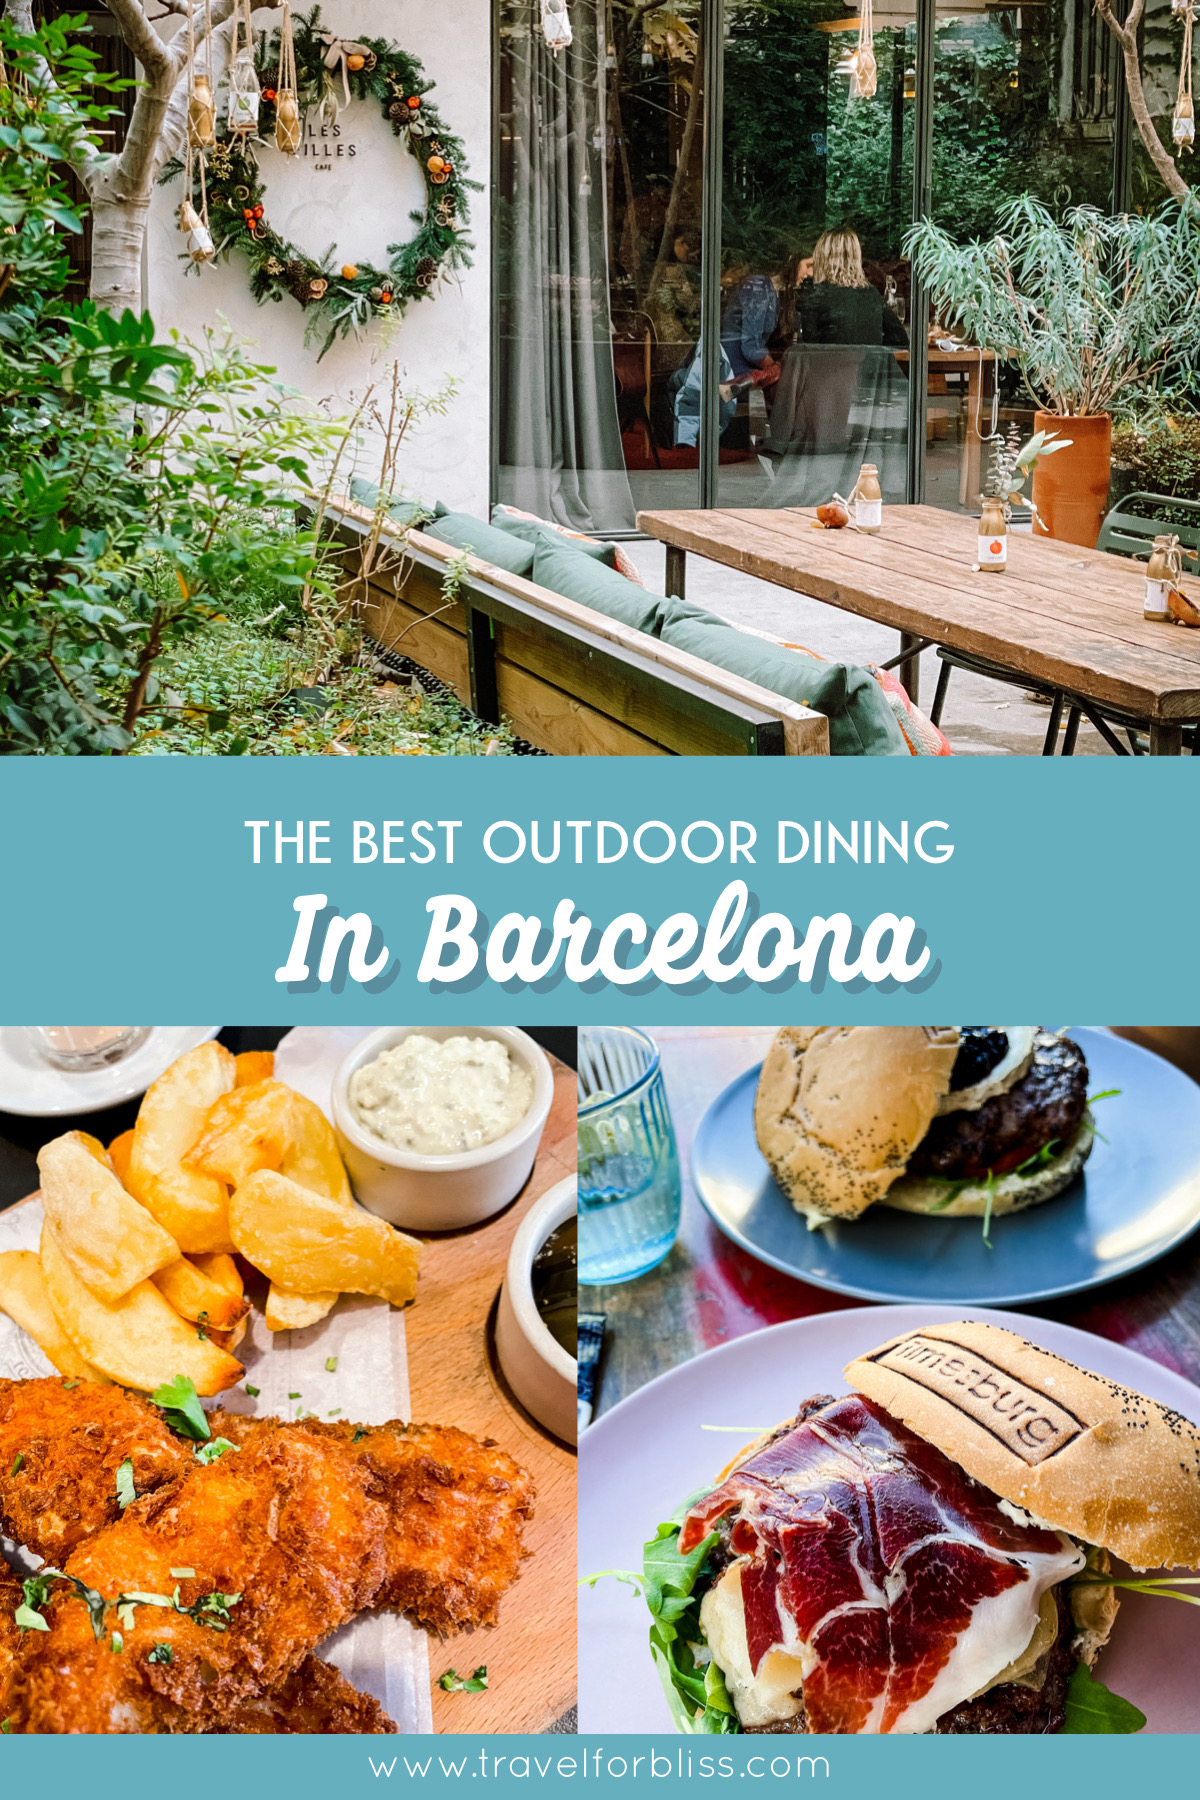 Discover the some of the best restaurants in Barcelona. All these restaurants have great outdoor dining providing a safe place to dine in Barcelona